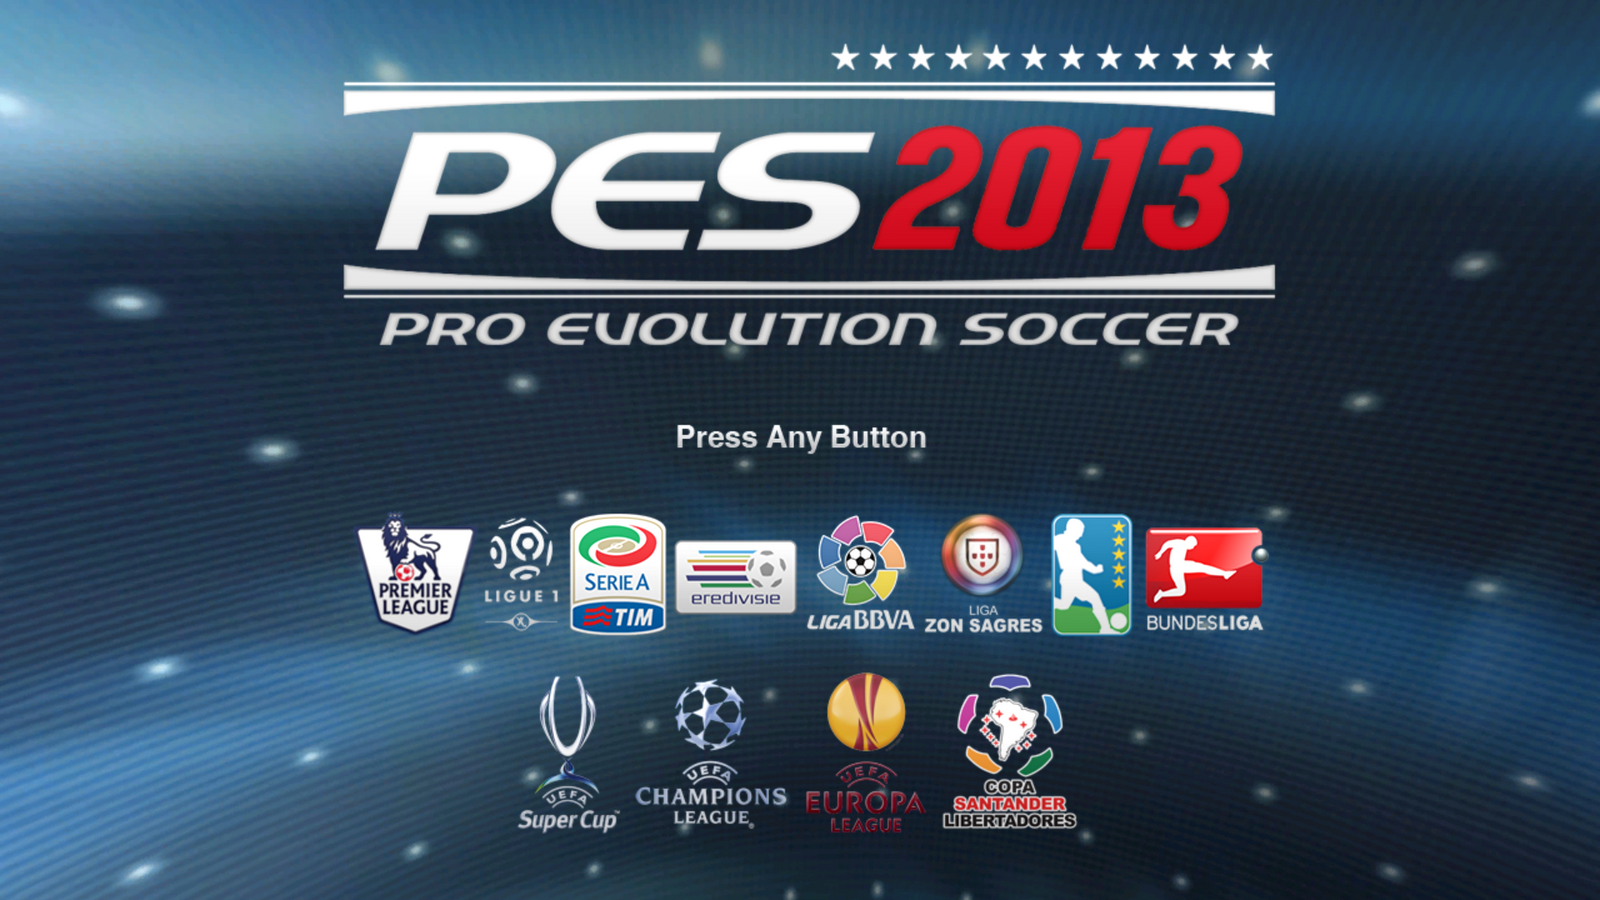 title p es 2013 patch data relase 2012 category games pc patch